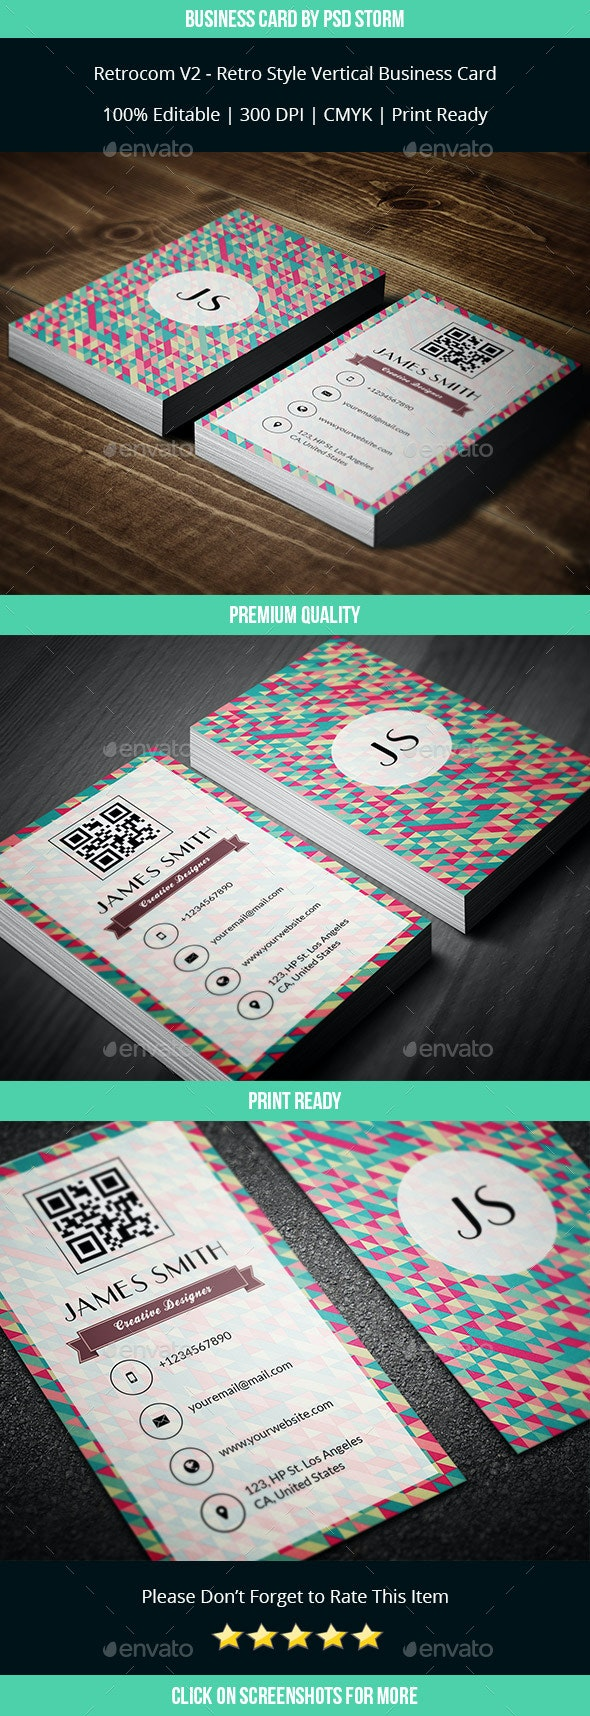 Retrocom V2 - Retro Style Vertical Business Card - Retro/Vintage Business Cards